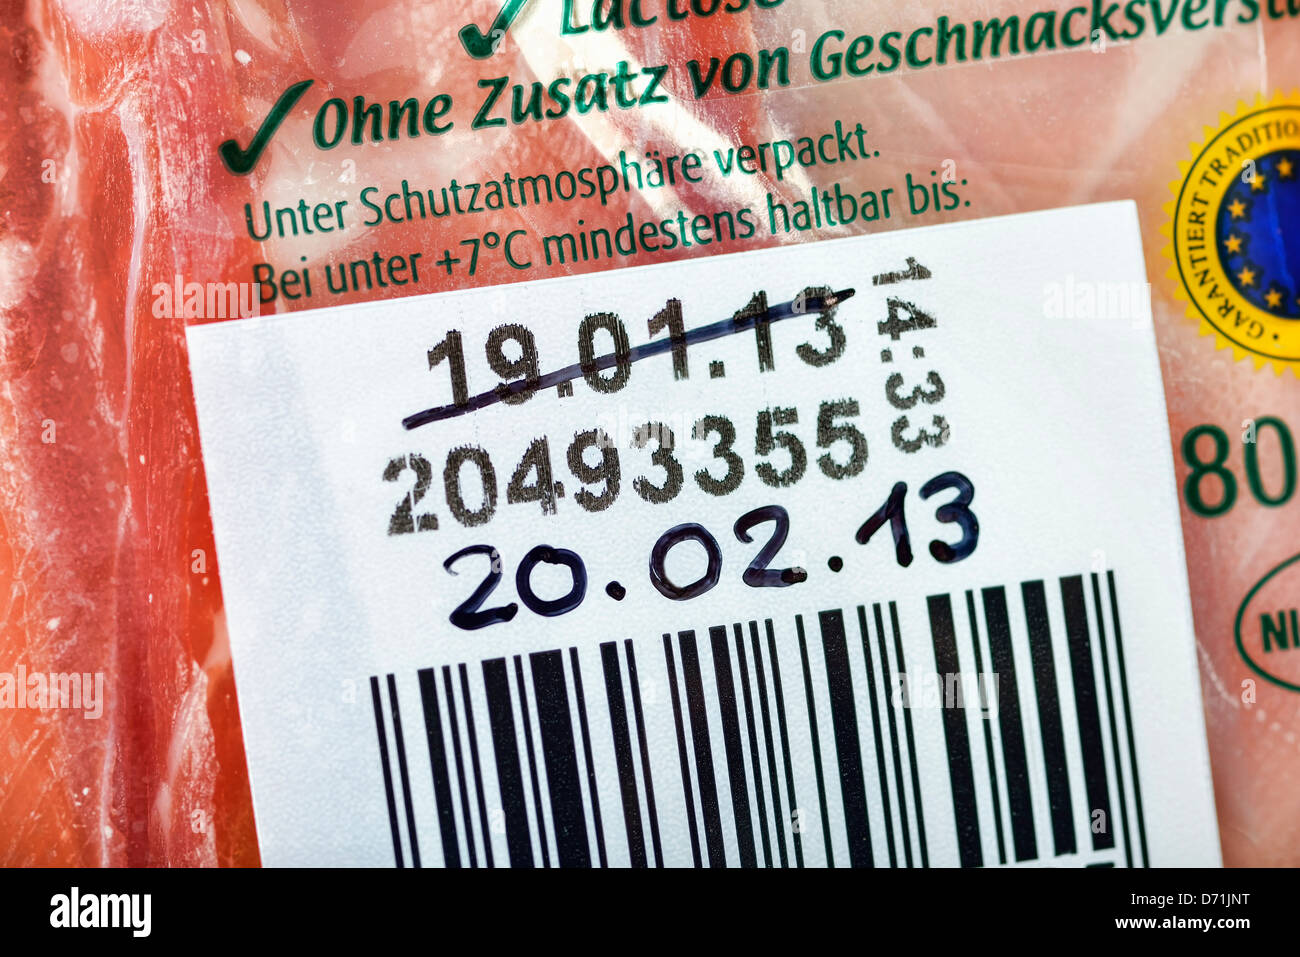 Extended durability date, Gammelfleisch scandal - Stock Image